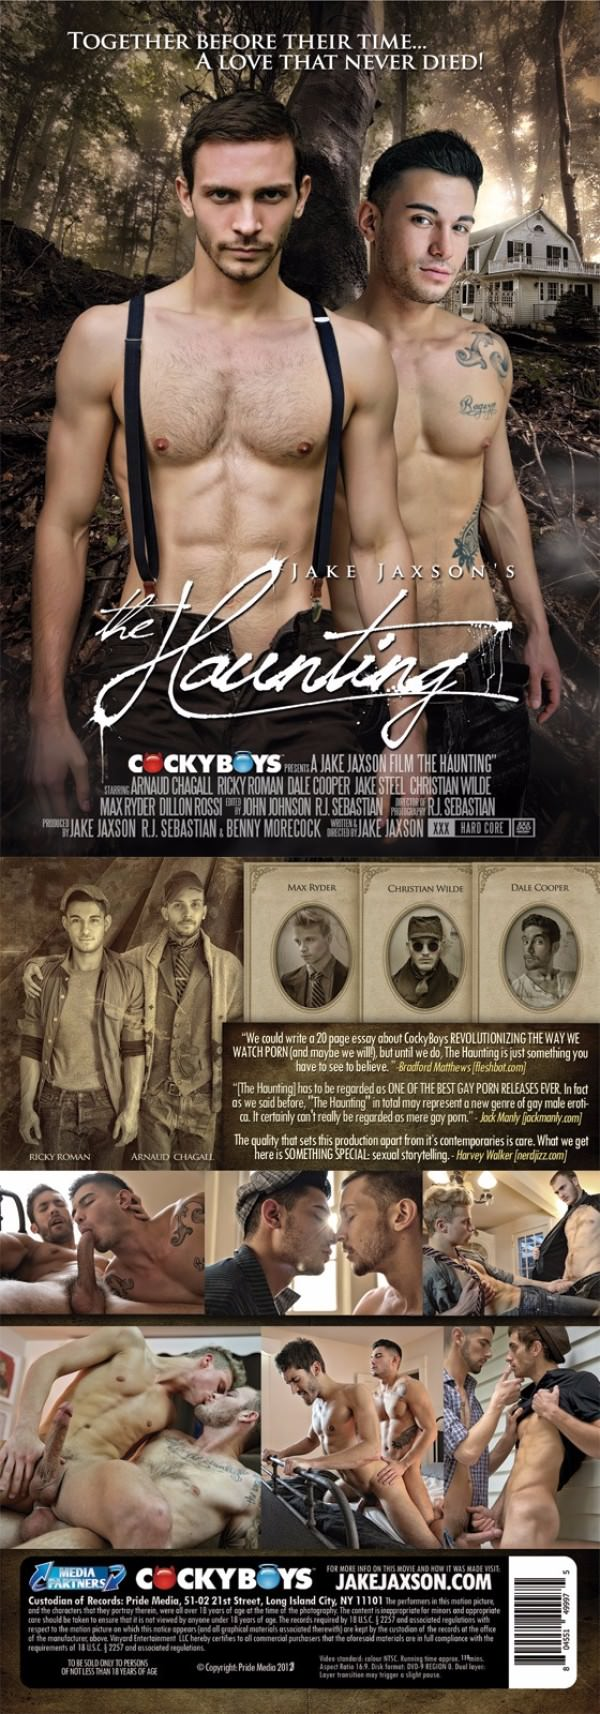 CockyBoys The Haunting - Full Feature - Arnaud Chagall, Christian Wilde, Dale Cooper, Dillon Rossi, Jake Steel, Max Ryder Ricky Roman